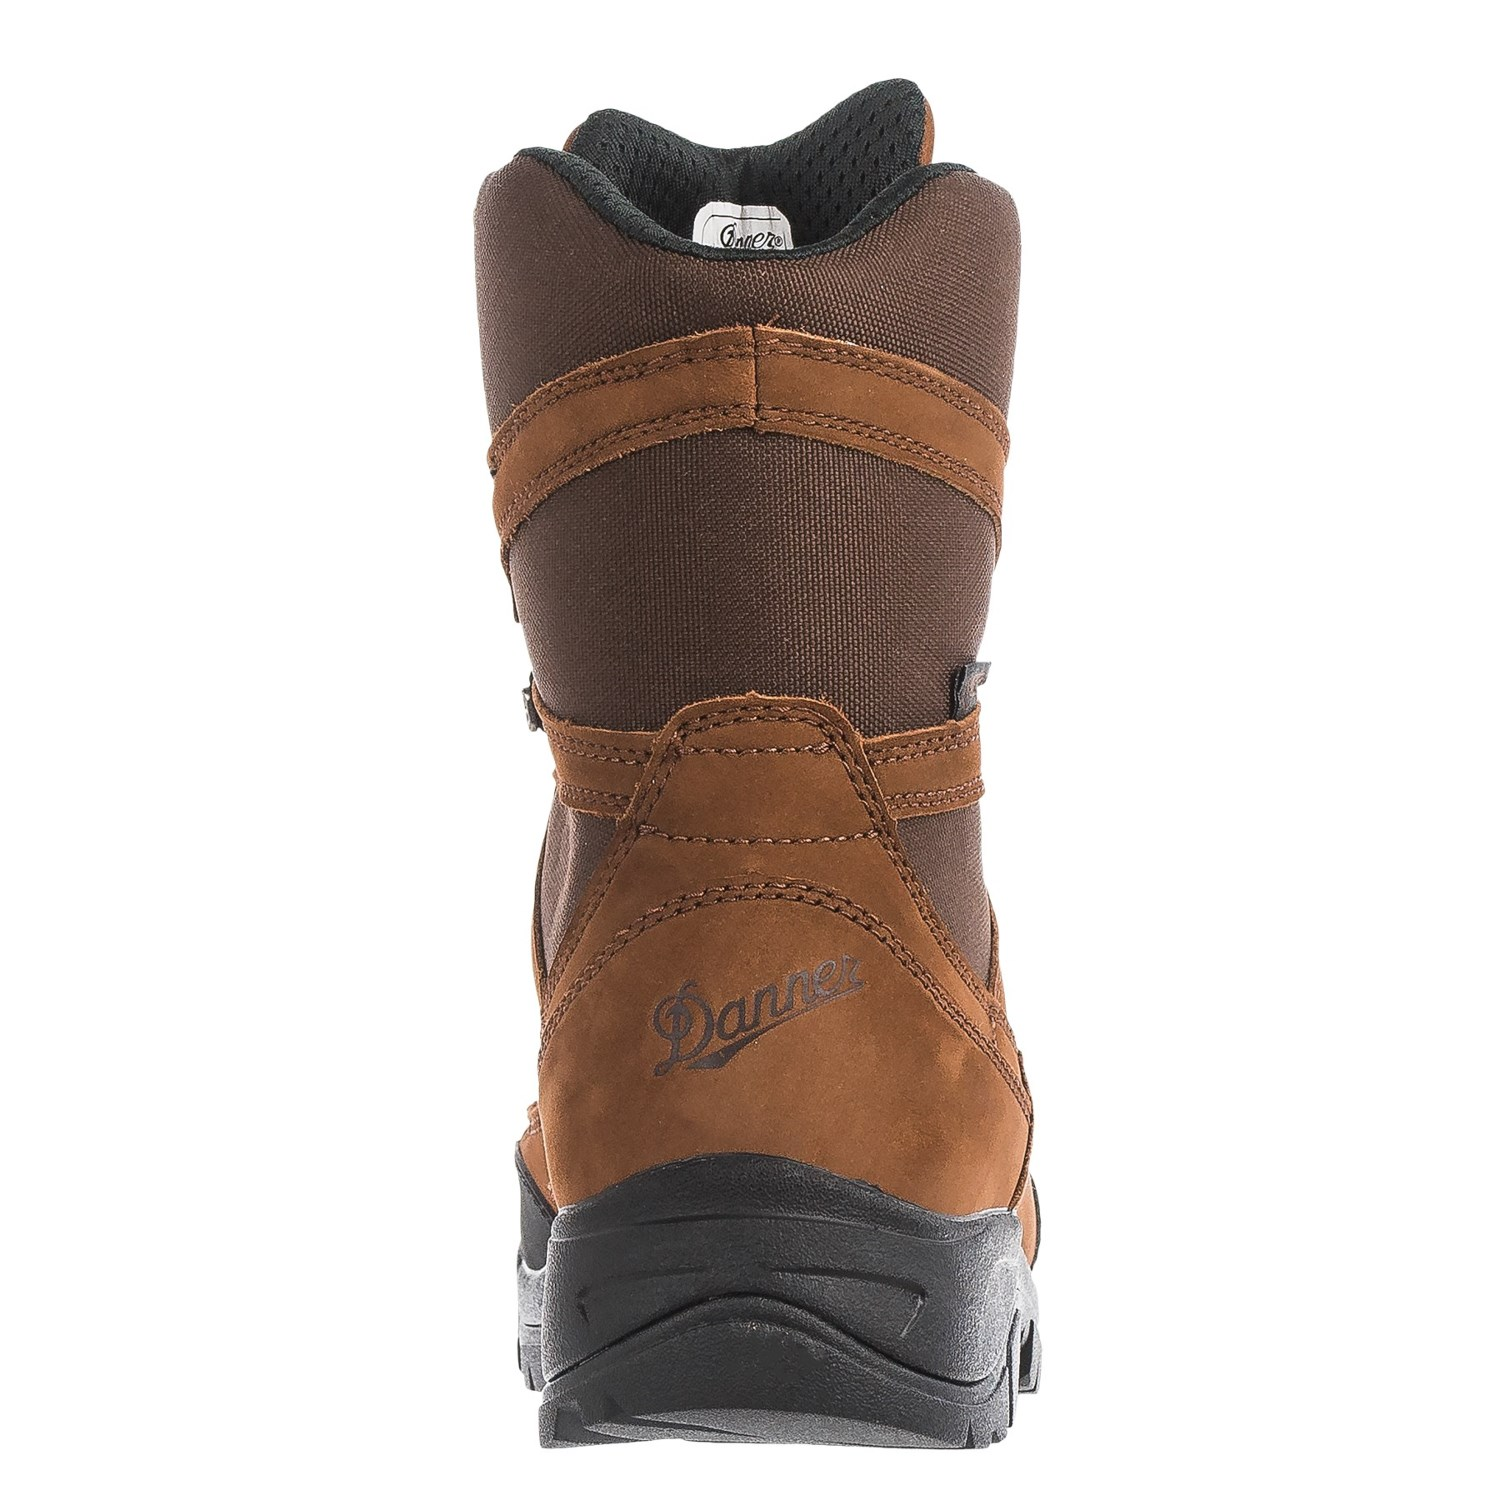 Danner Gore Tex Hunting Boots Coltford Boots